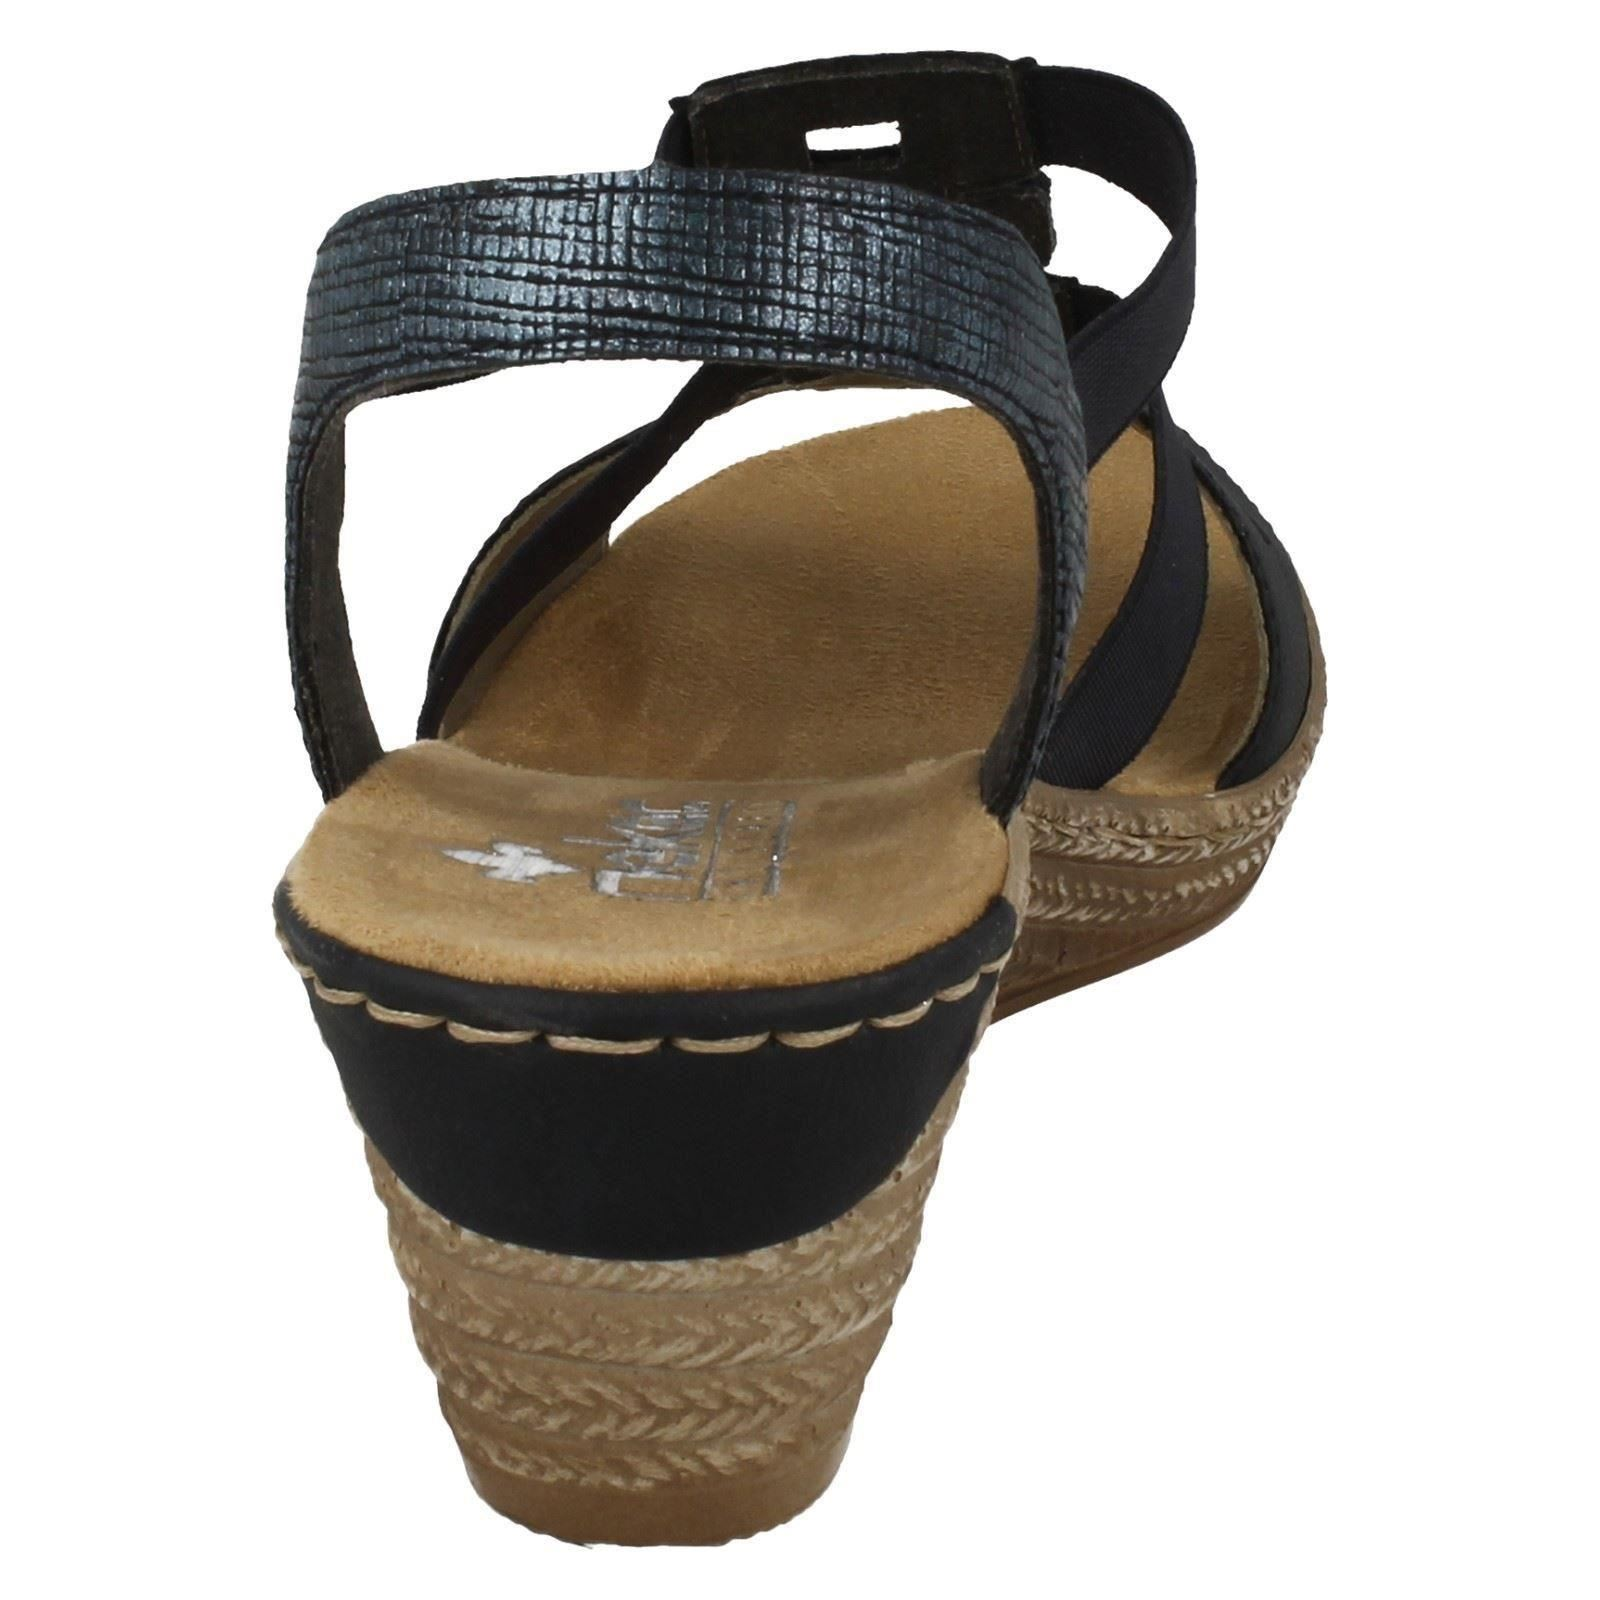 Último gran descuento Ladies Rieker Wedge Heeled Open Toe Sandals 62488